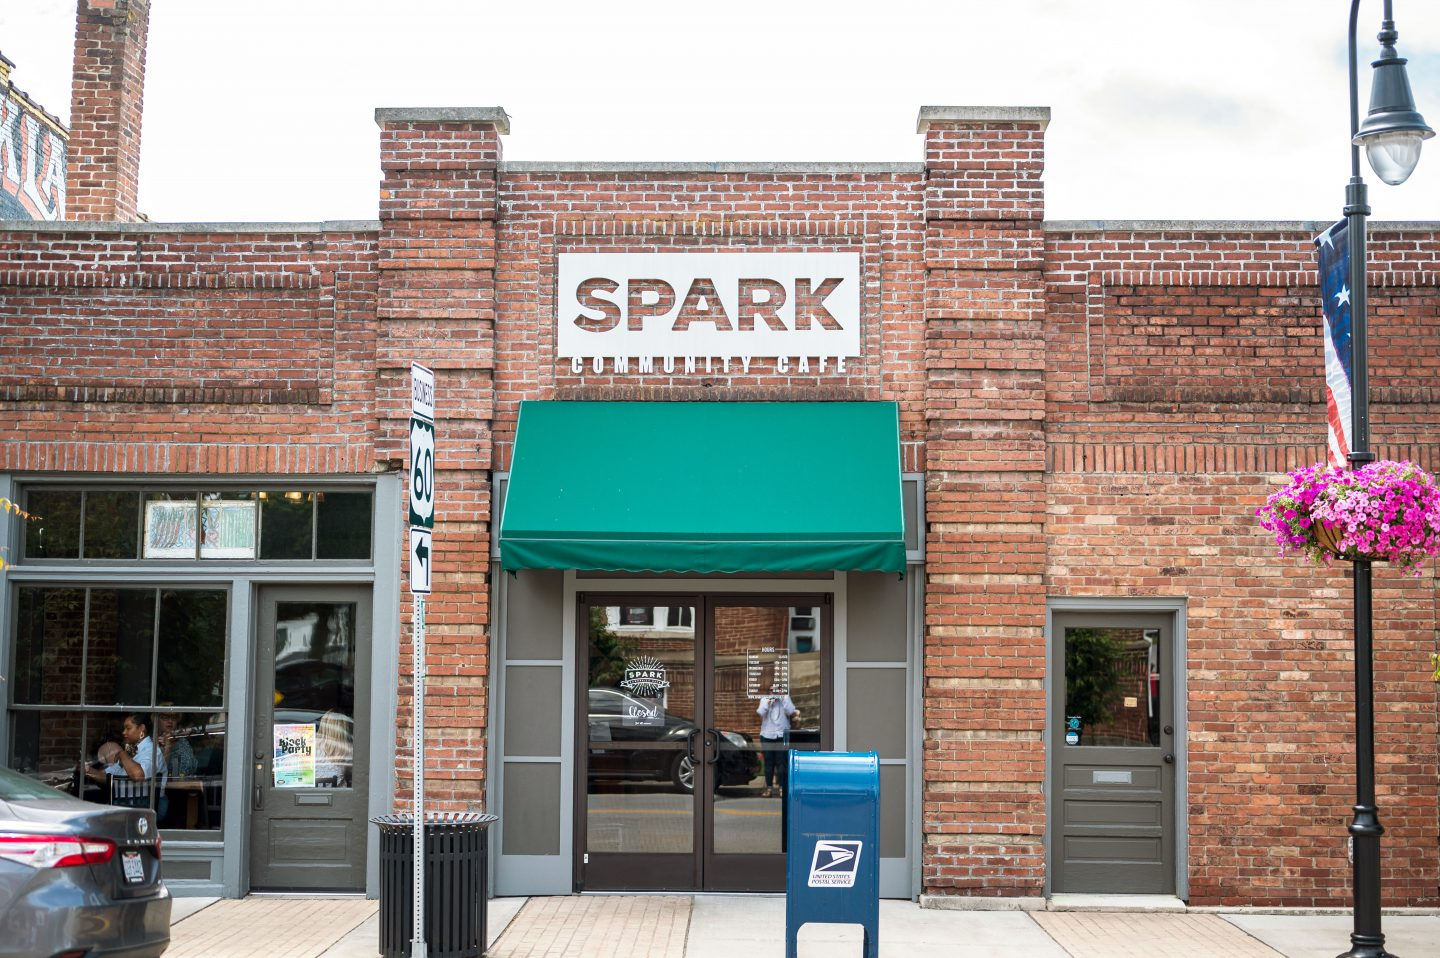 Outside of Spark Community Cafe